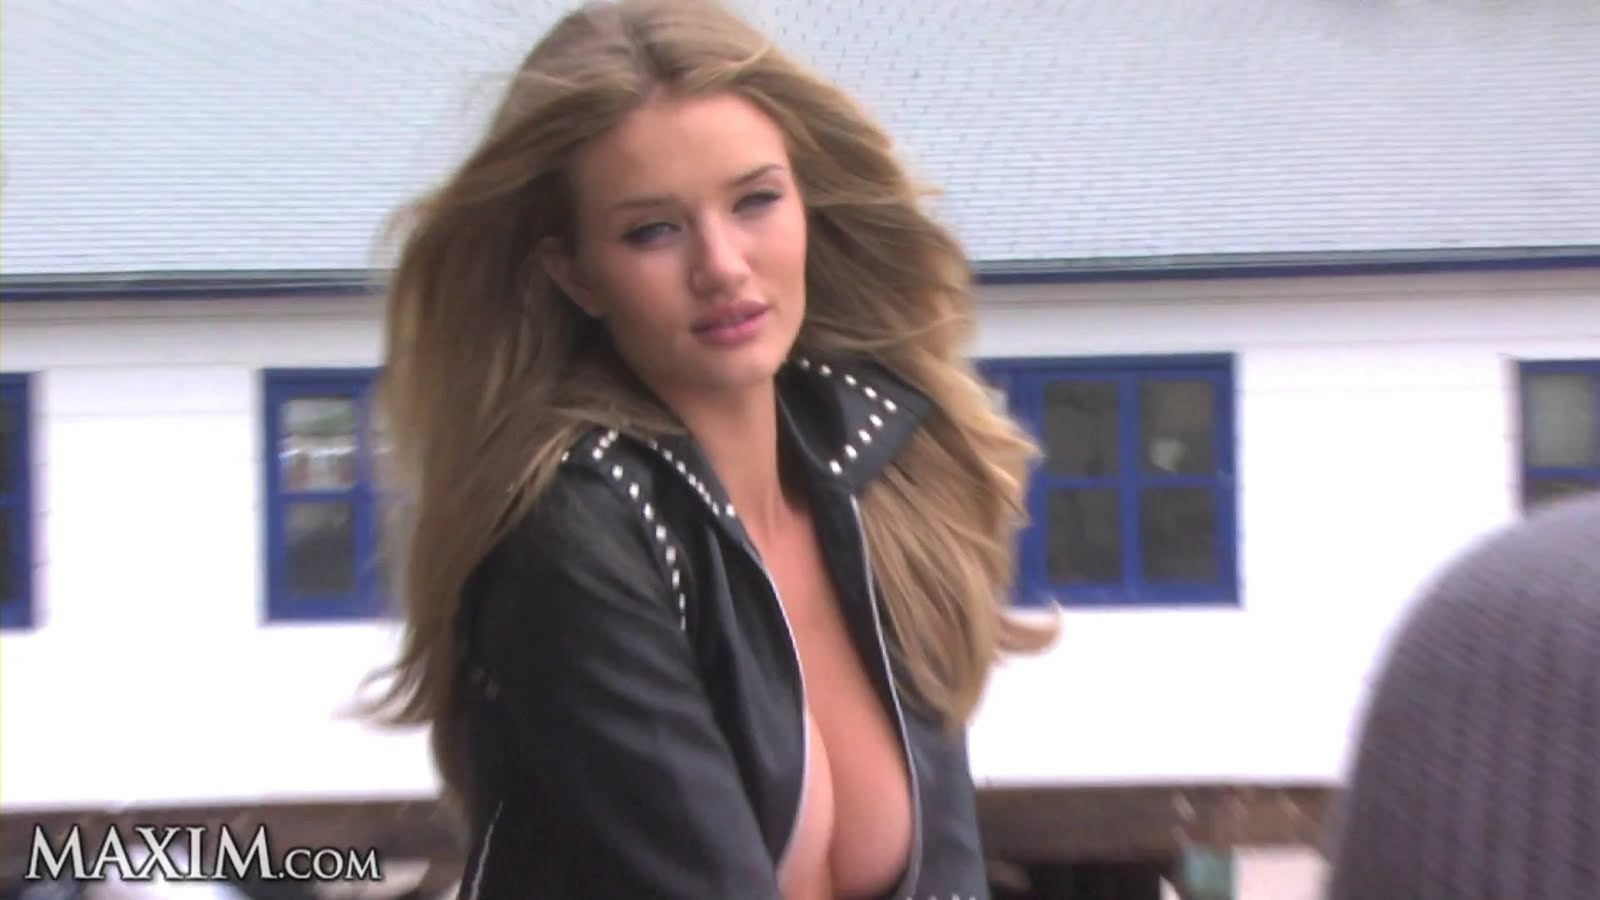 b21bd2af79 Rosie Huntington-whiteley images Rosie Huntington-Whiteley in Maxim  Magazine HD wallpaper and background photos